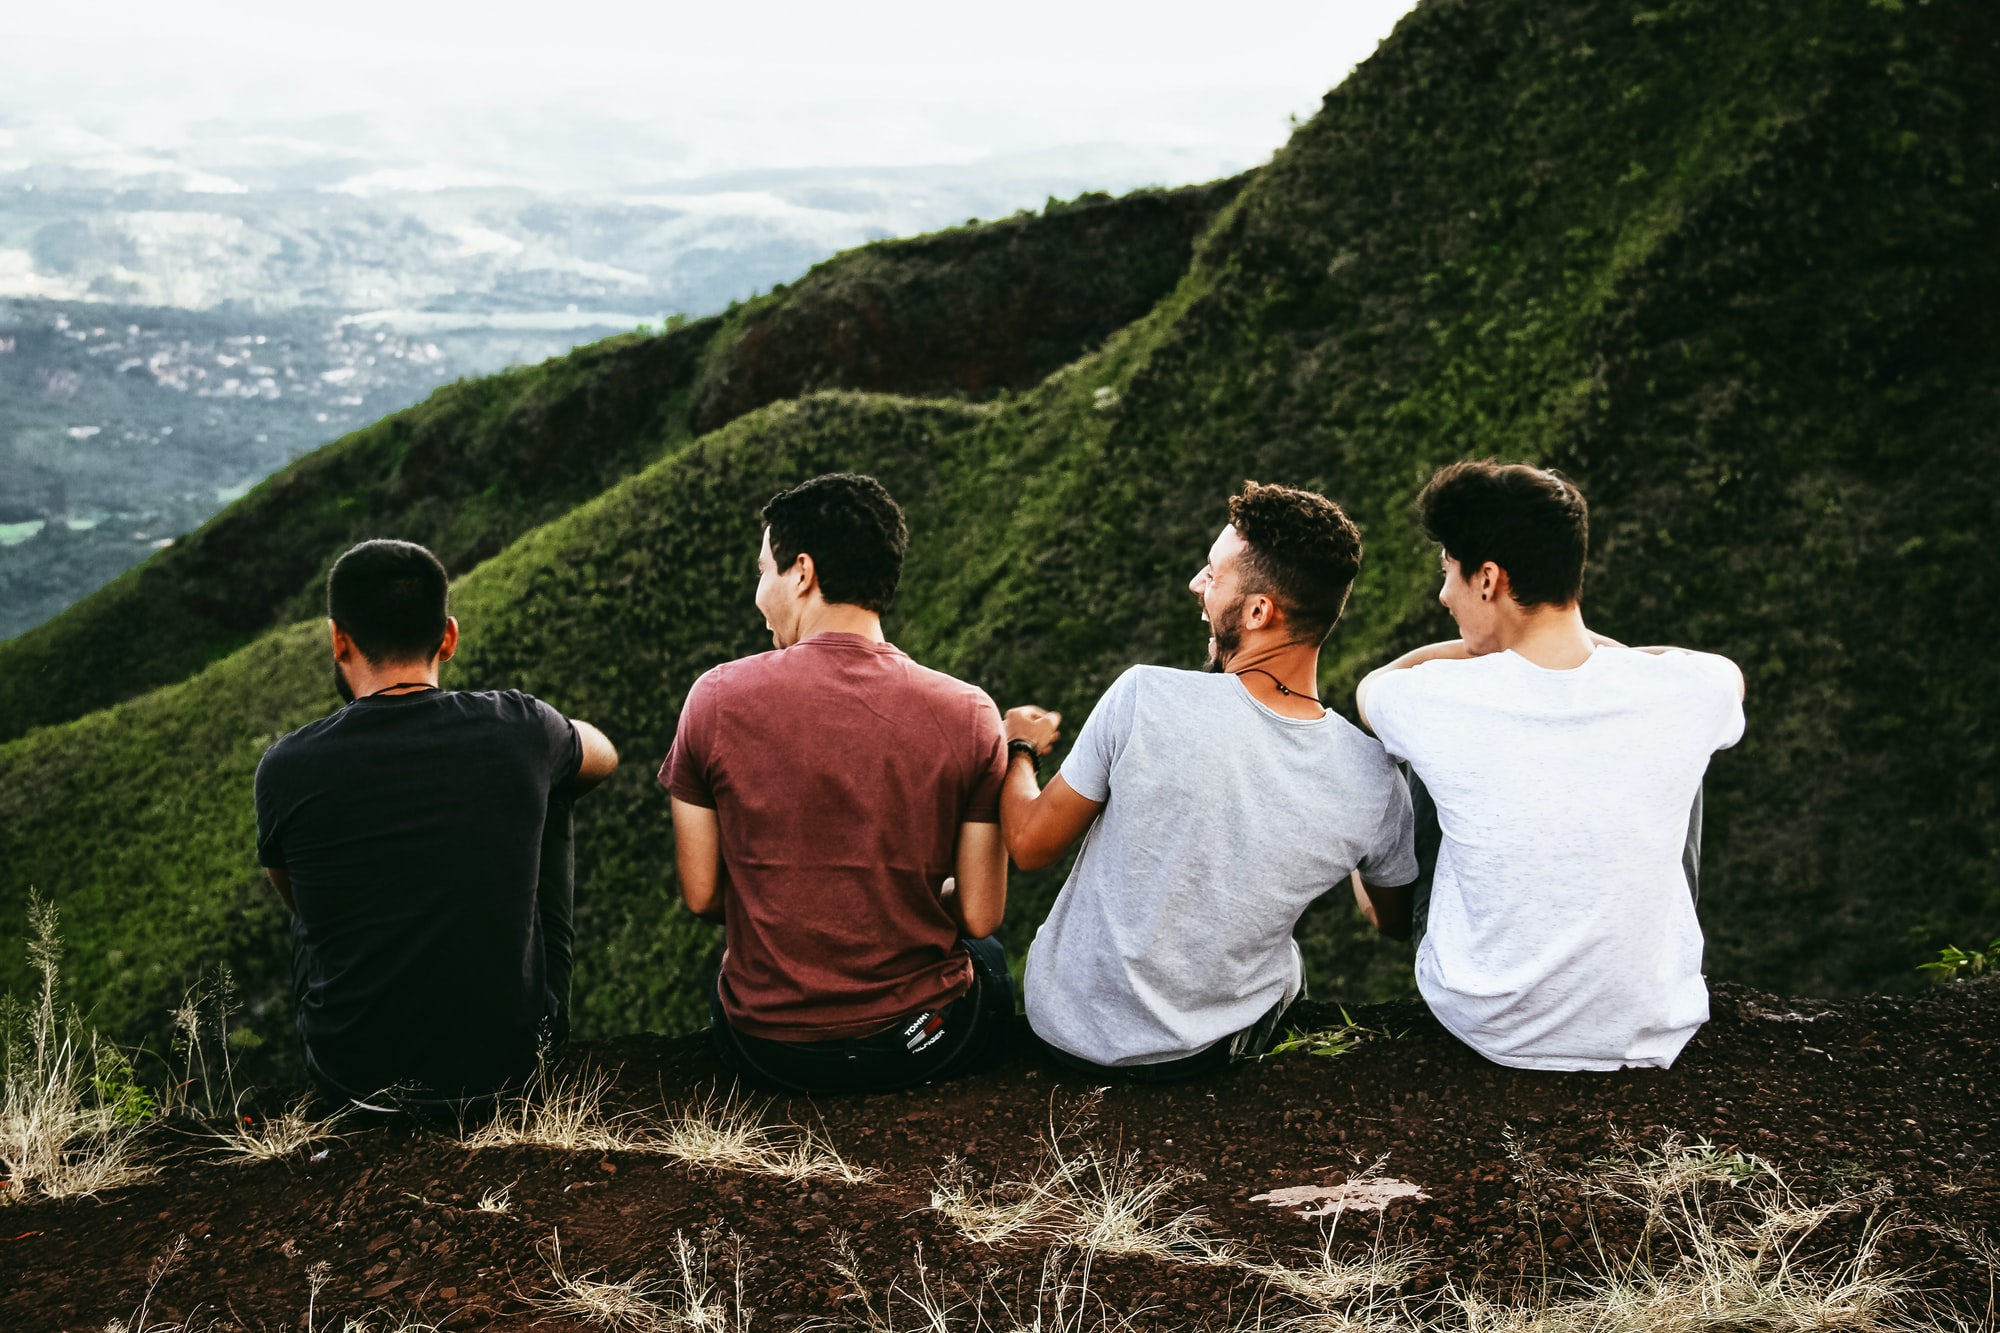 How to Develop Close Friendships